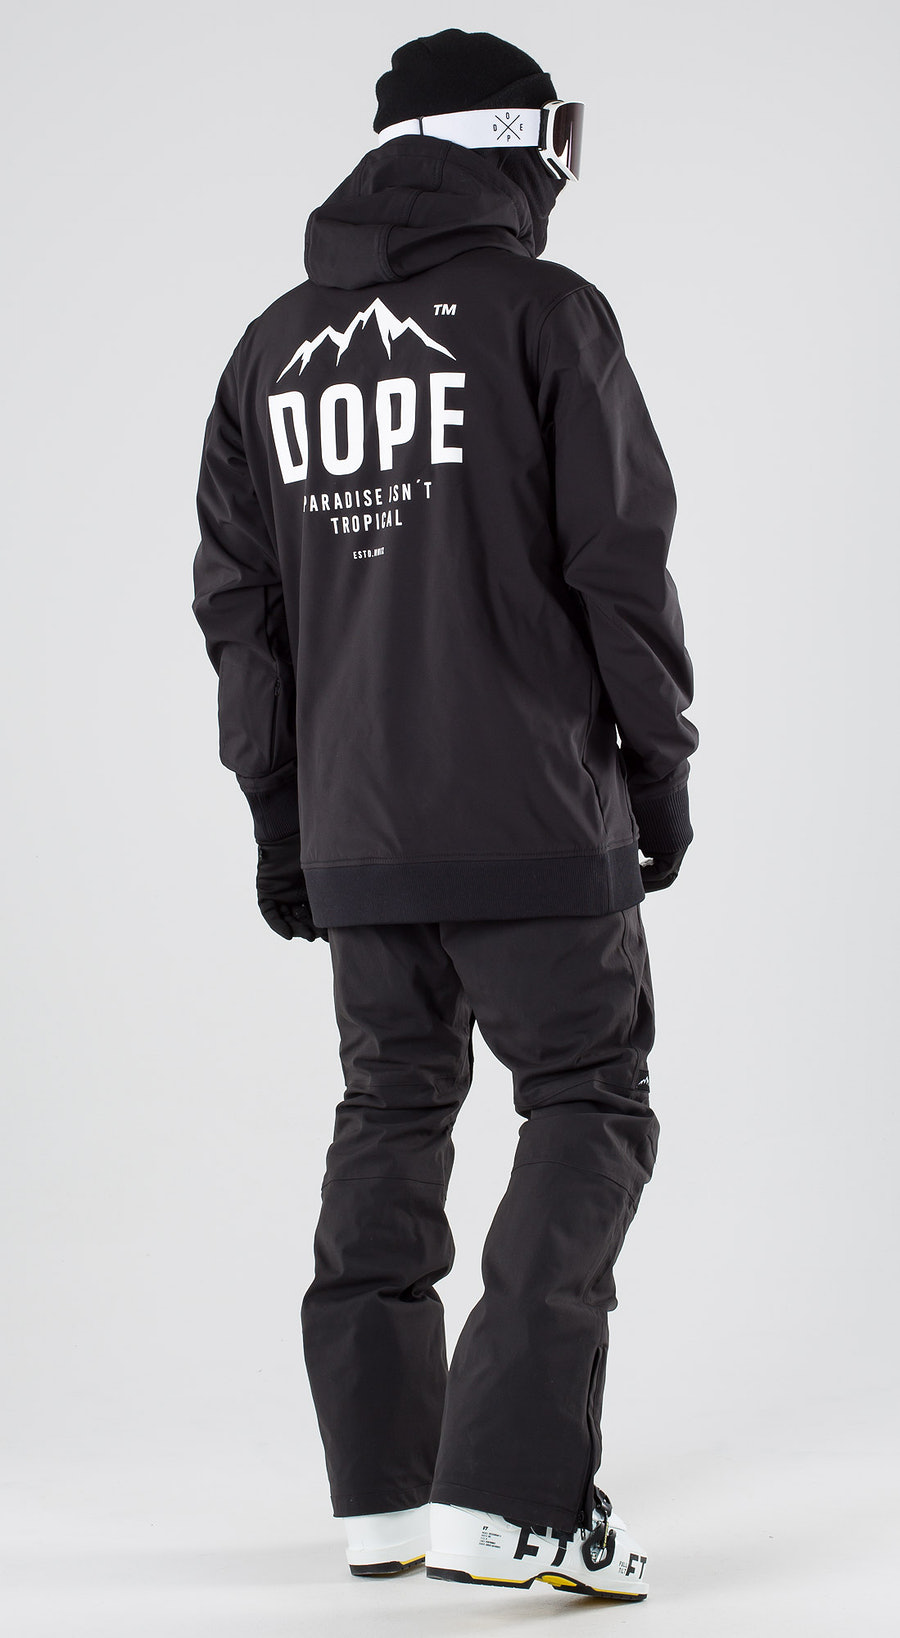 Dope Yeti Paradise II Black Ski clothing Multi